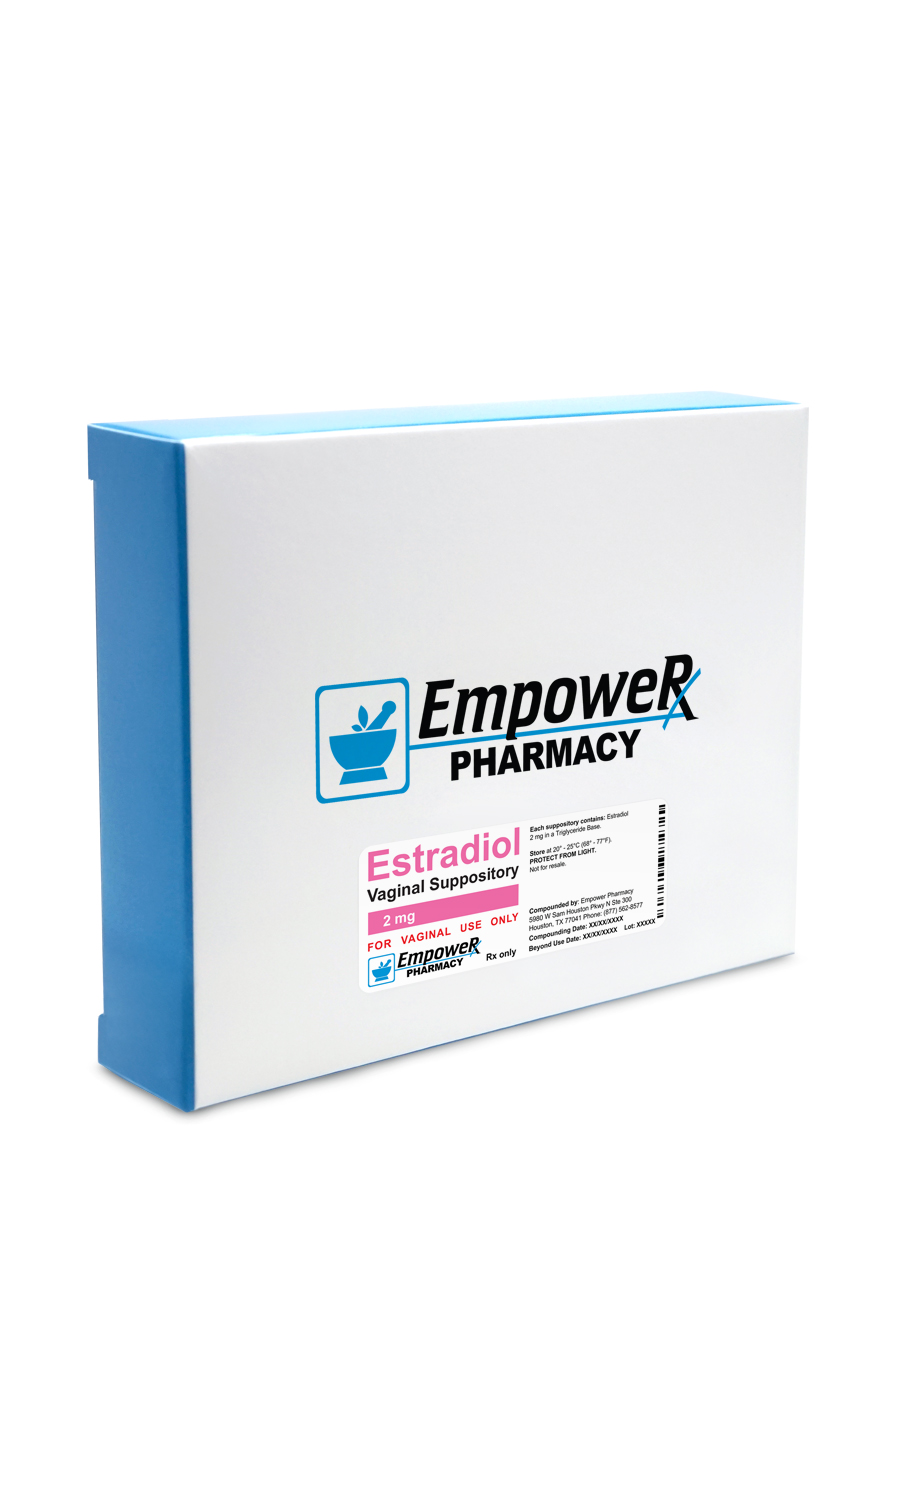 Estradiol Vaginal Suppository 2 mg